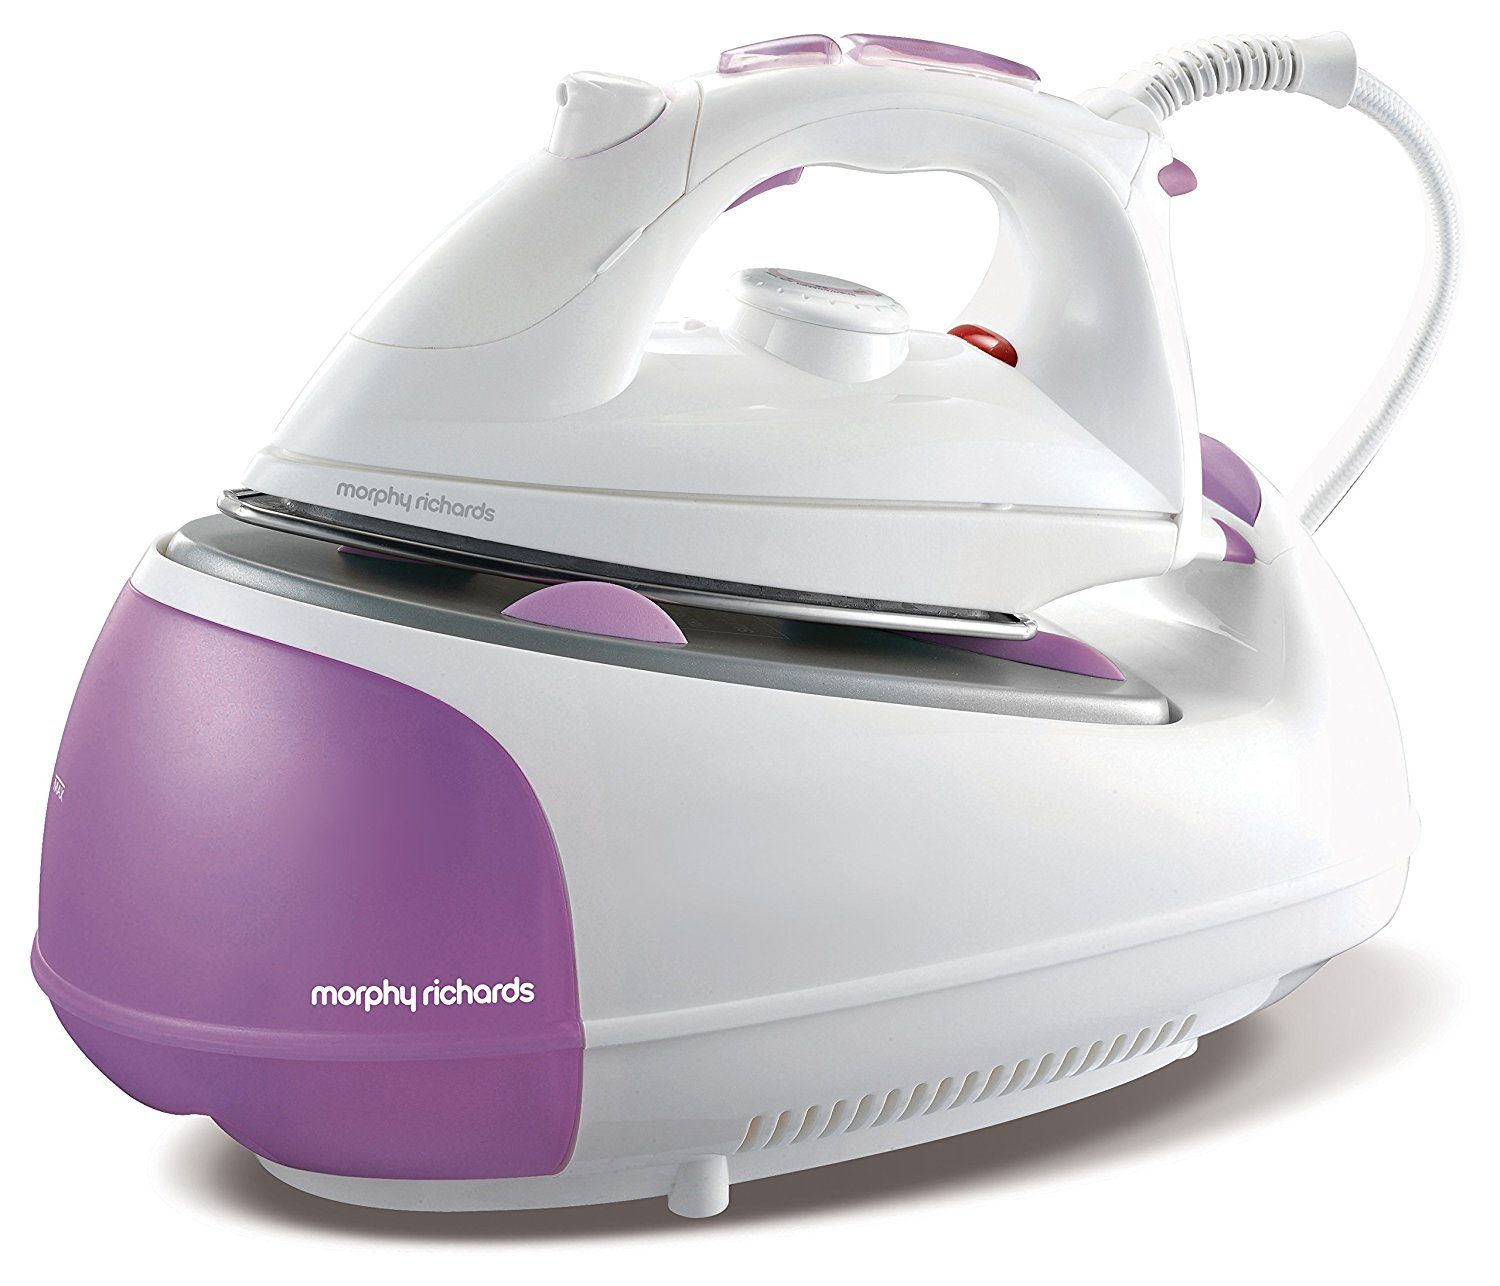 Morphy Richards 333020 Jet Steam Generator